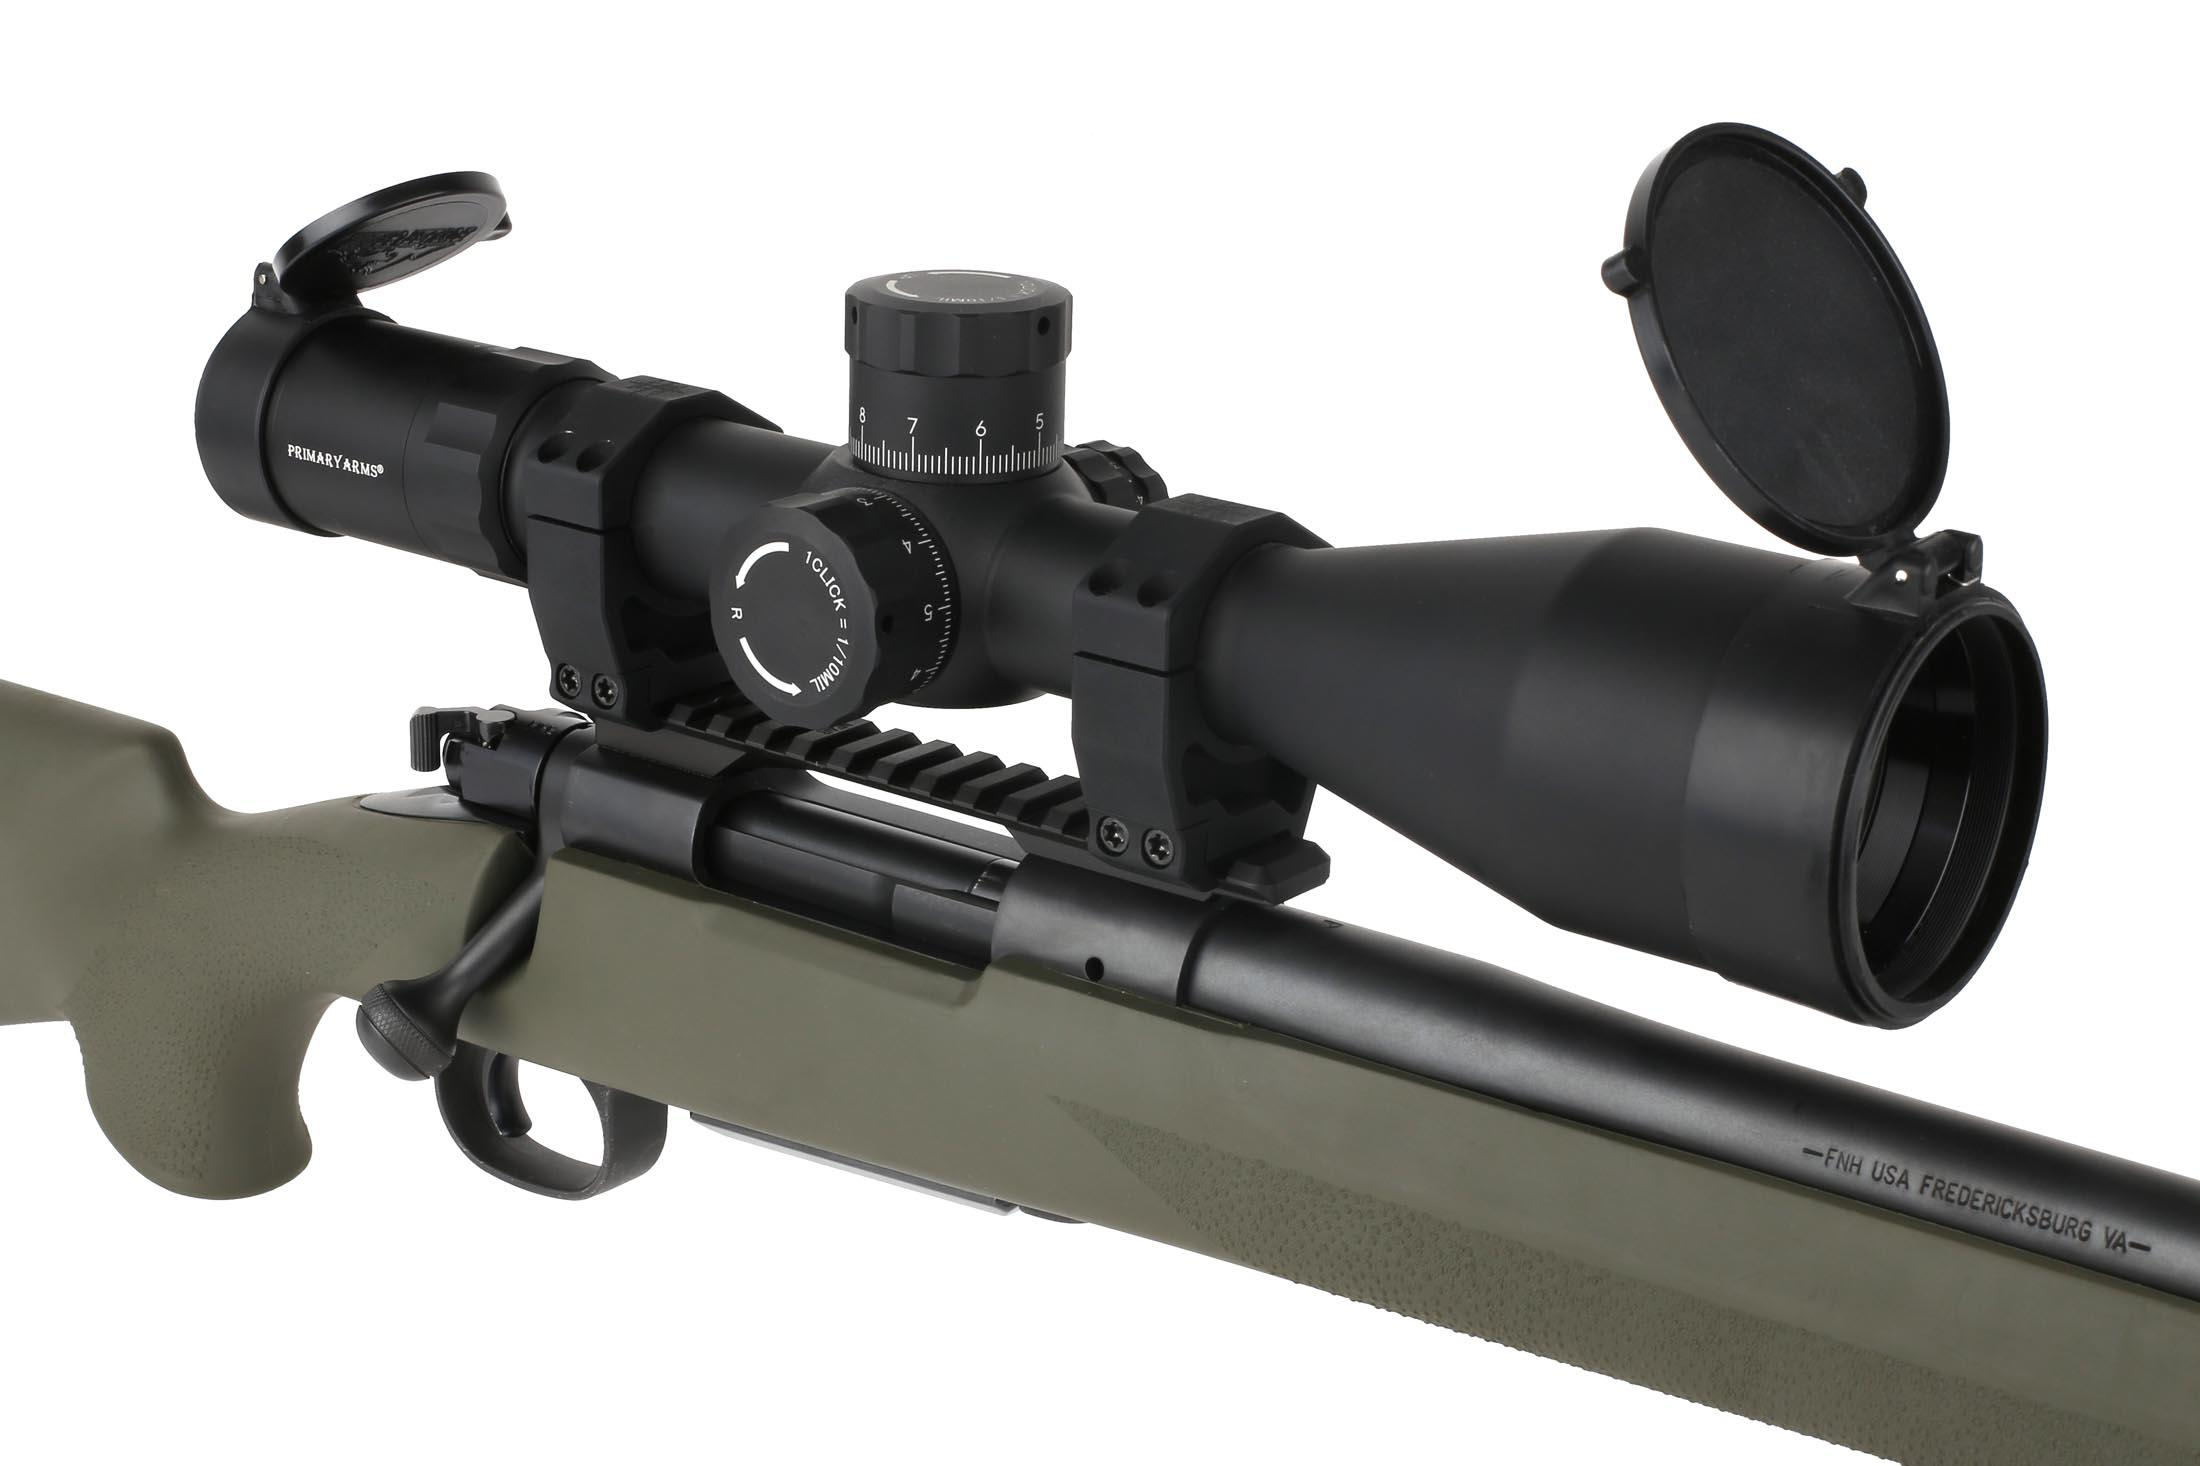 Primary Arms PLX5 6-30x56mm ACSS HUD DMR precision scope will help you reach extended ranges with your favorite rifle